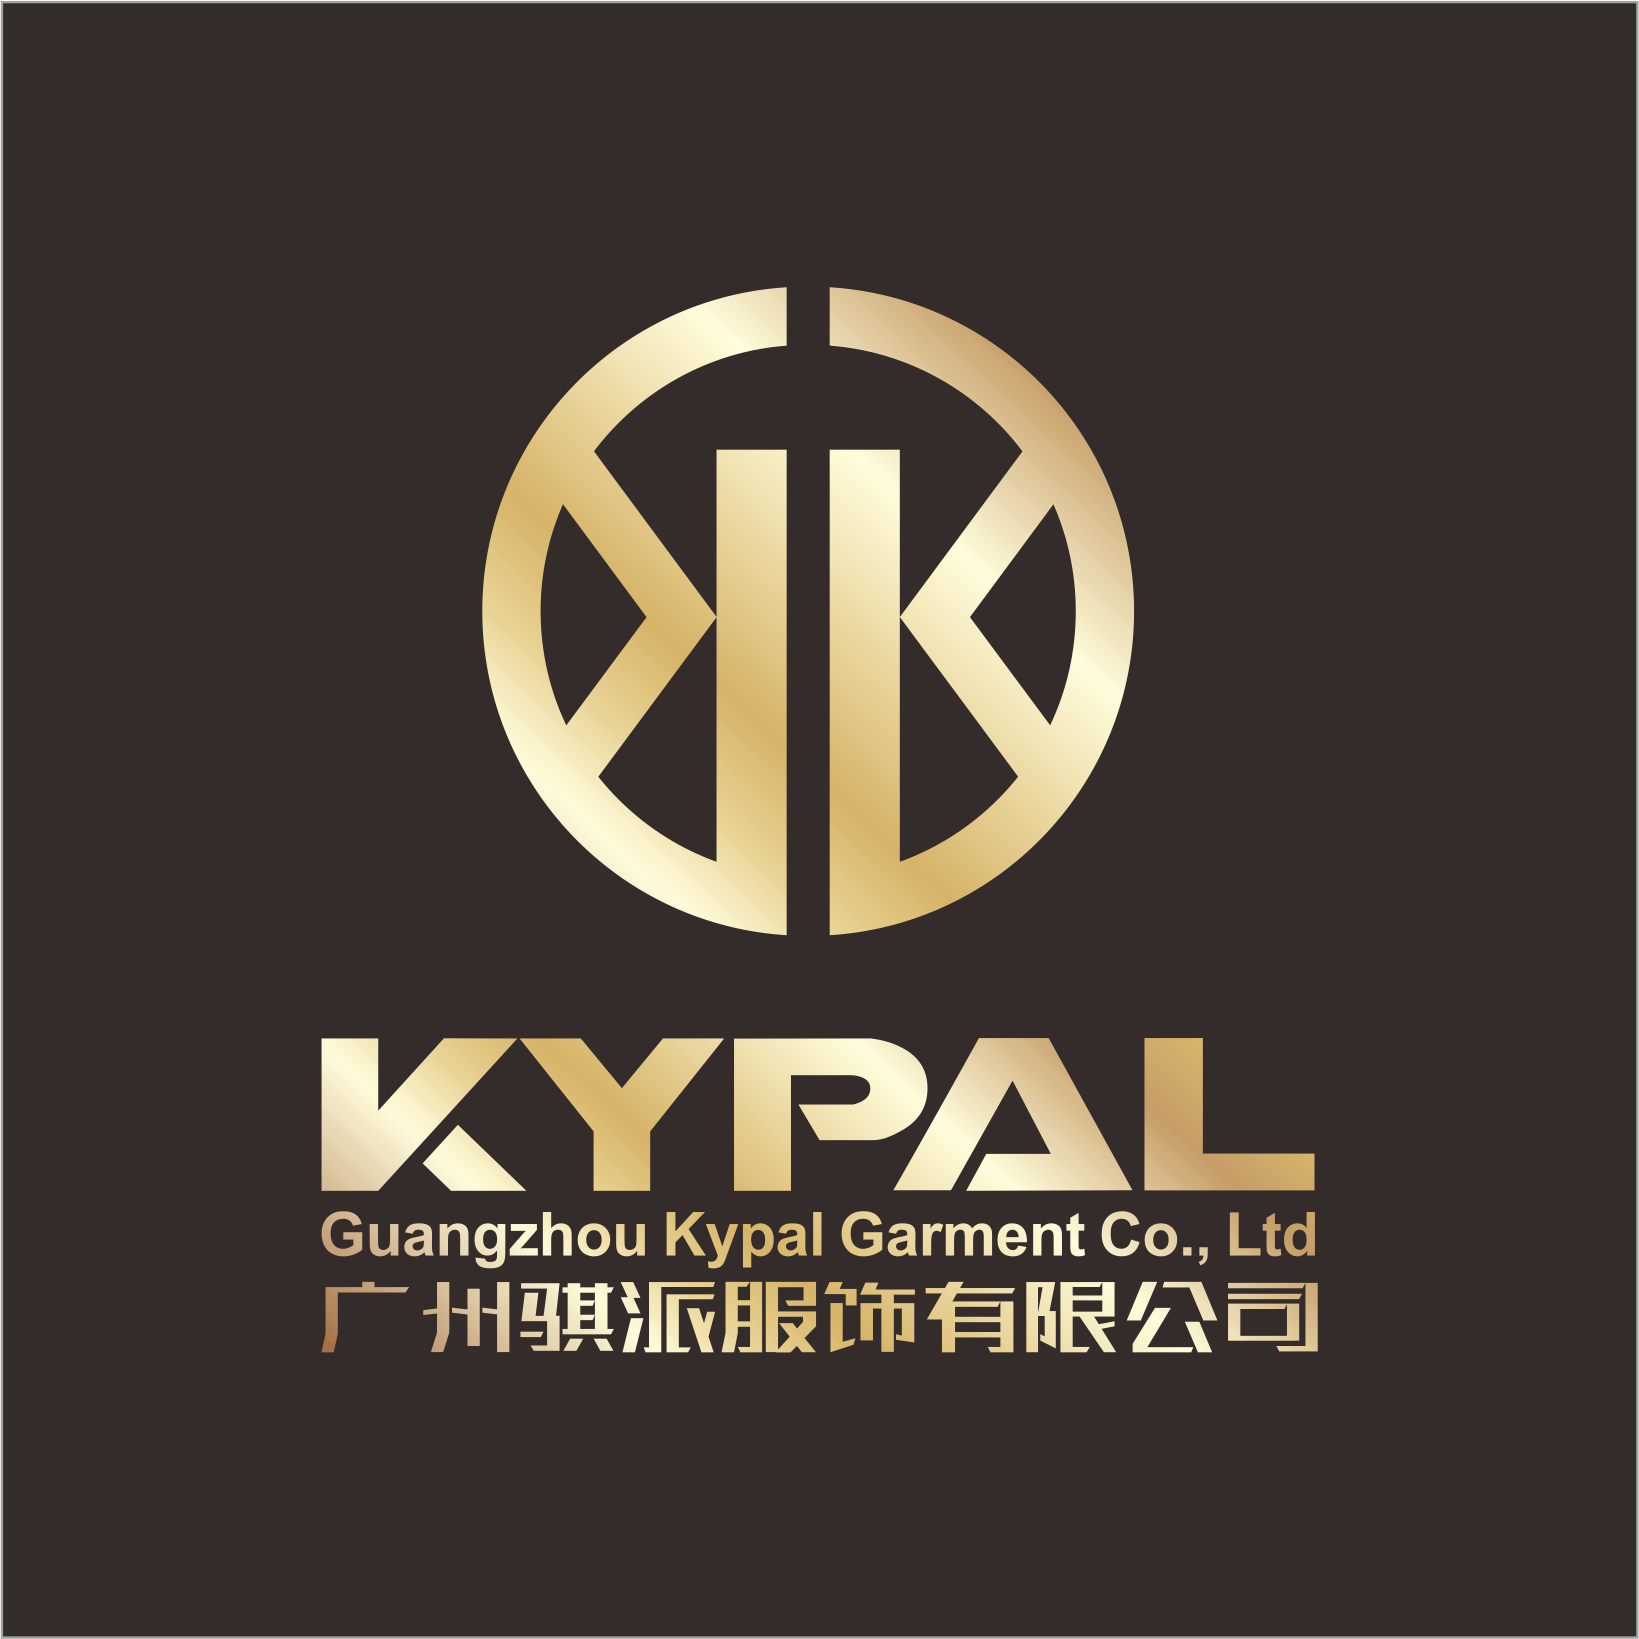 GUANGZHOU KYPAL GARMENT CO., LTD